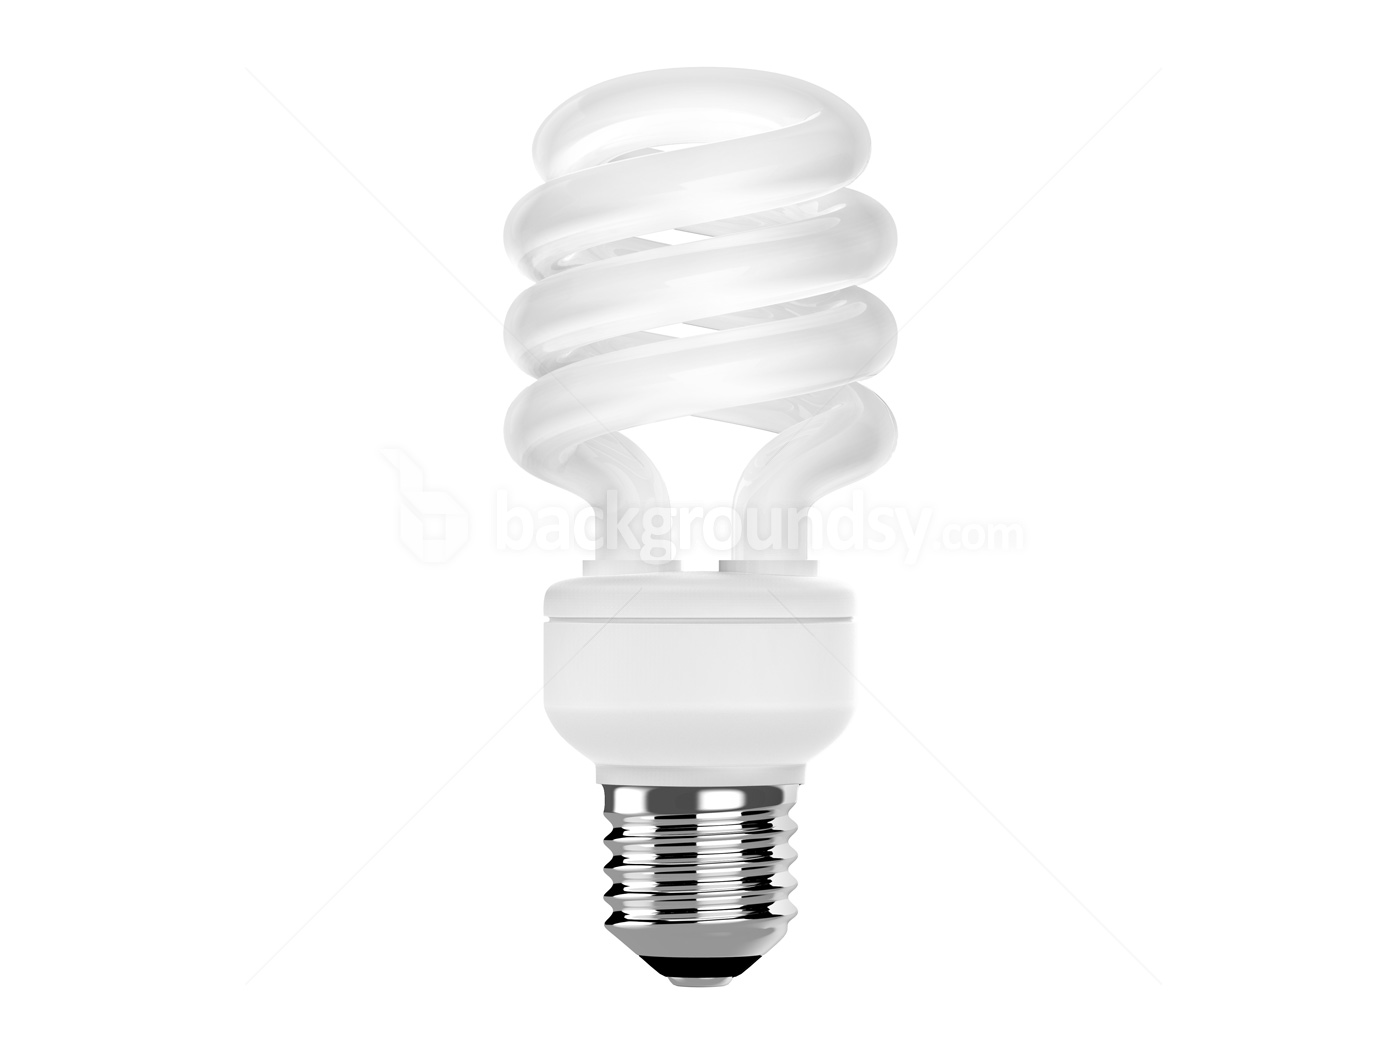 Fluorescent light bulb Fluorescent light bulb